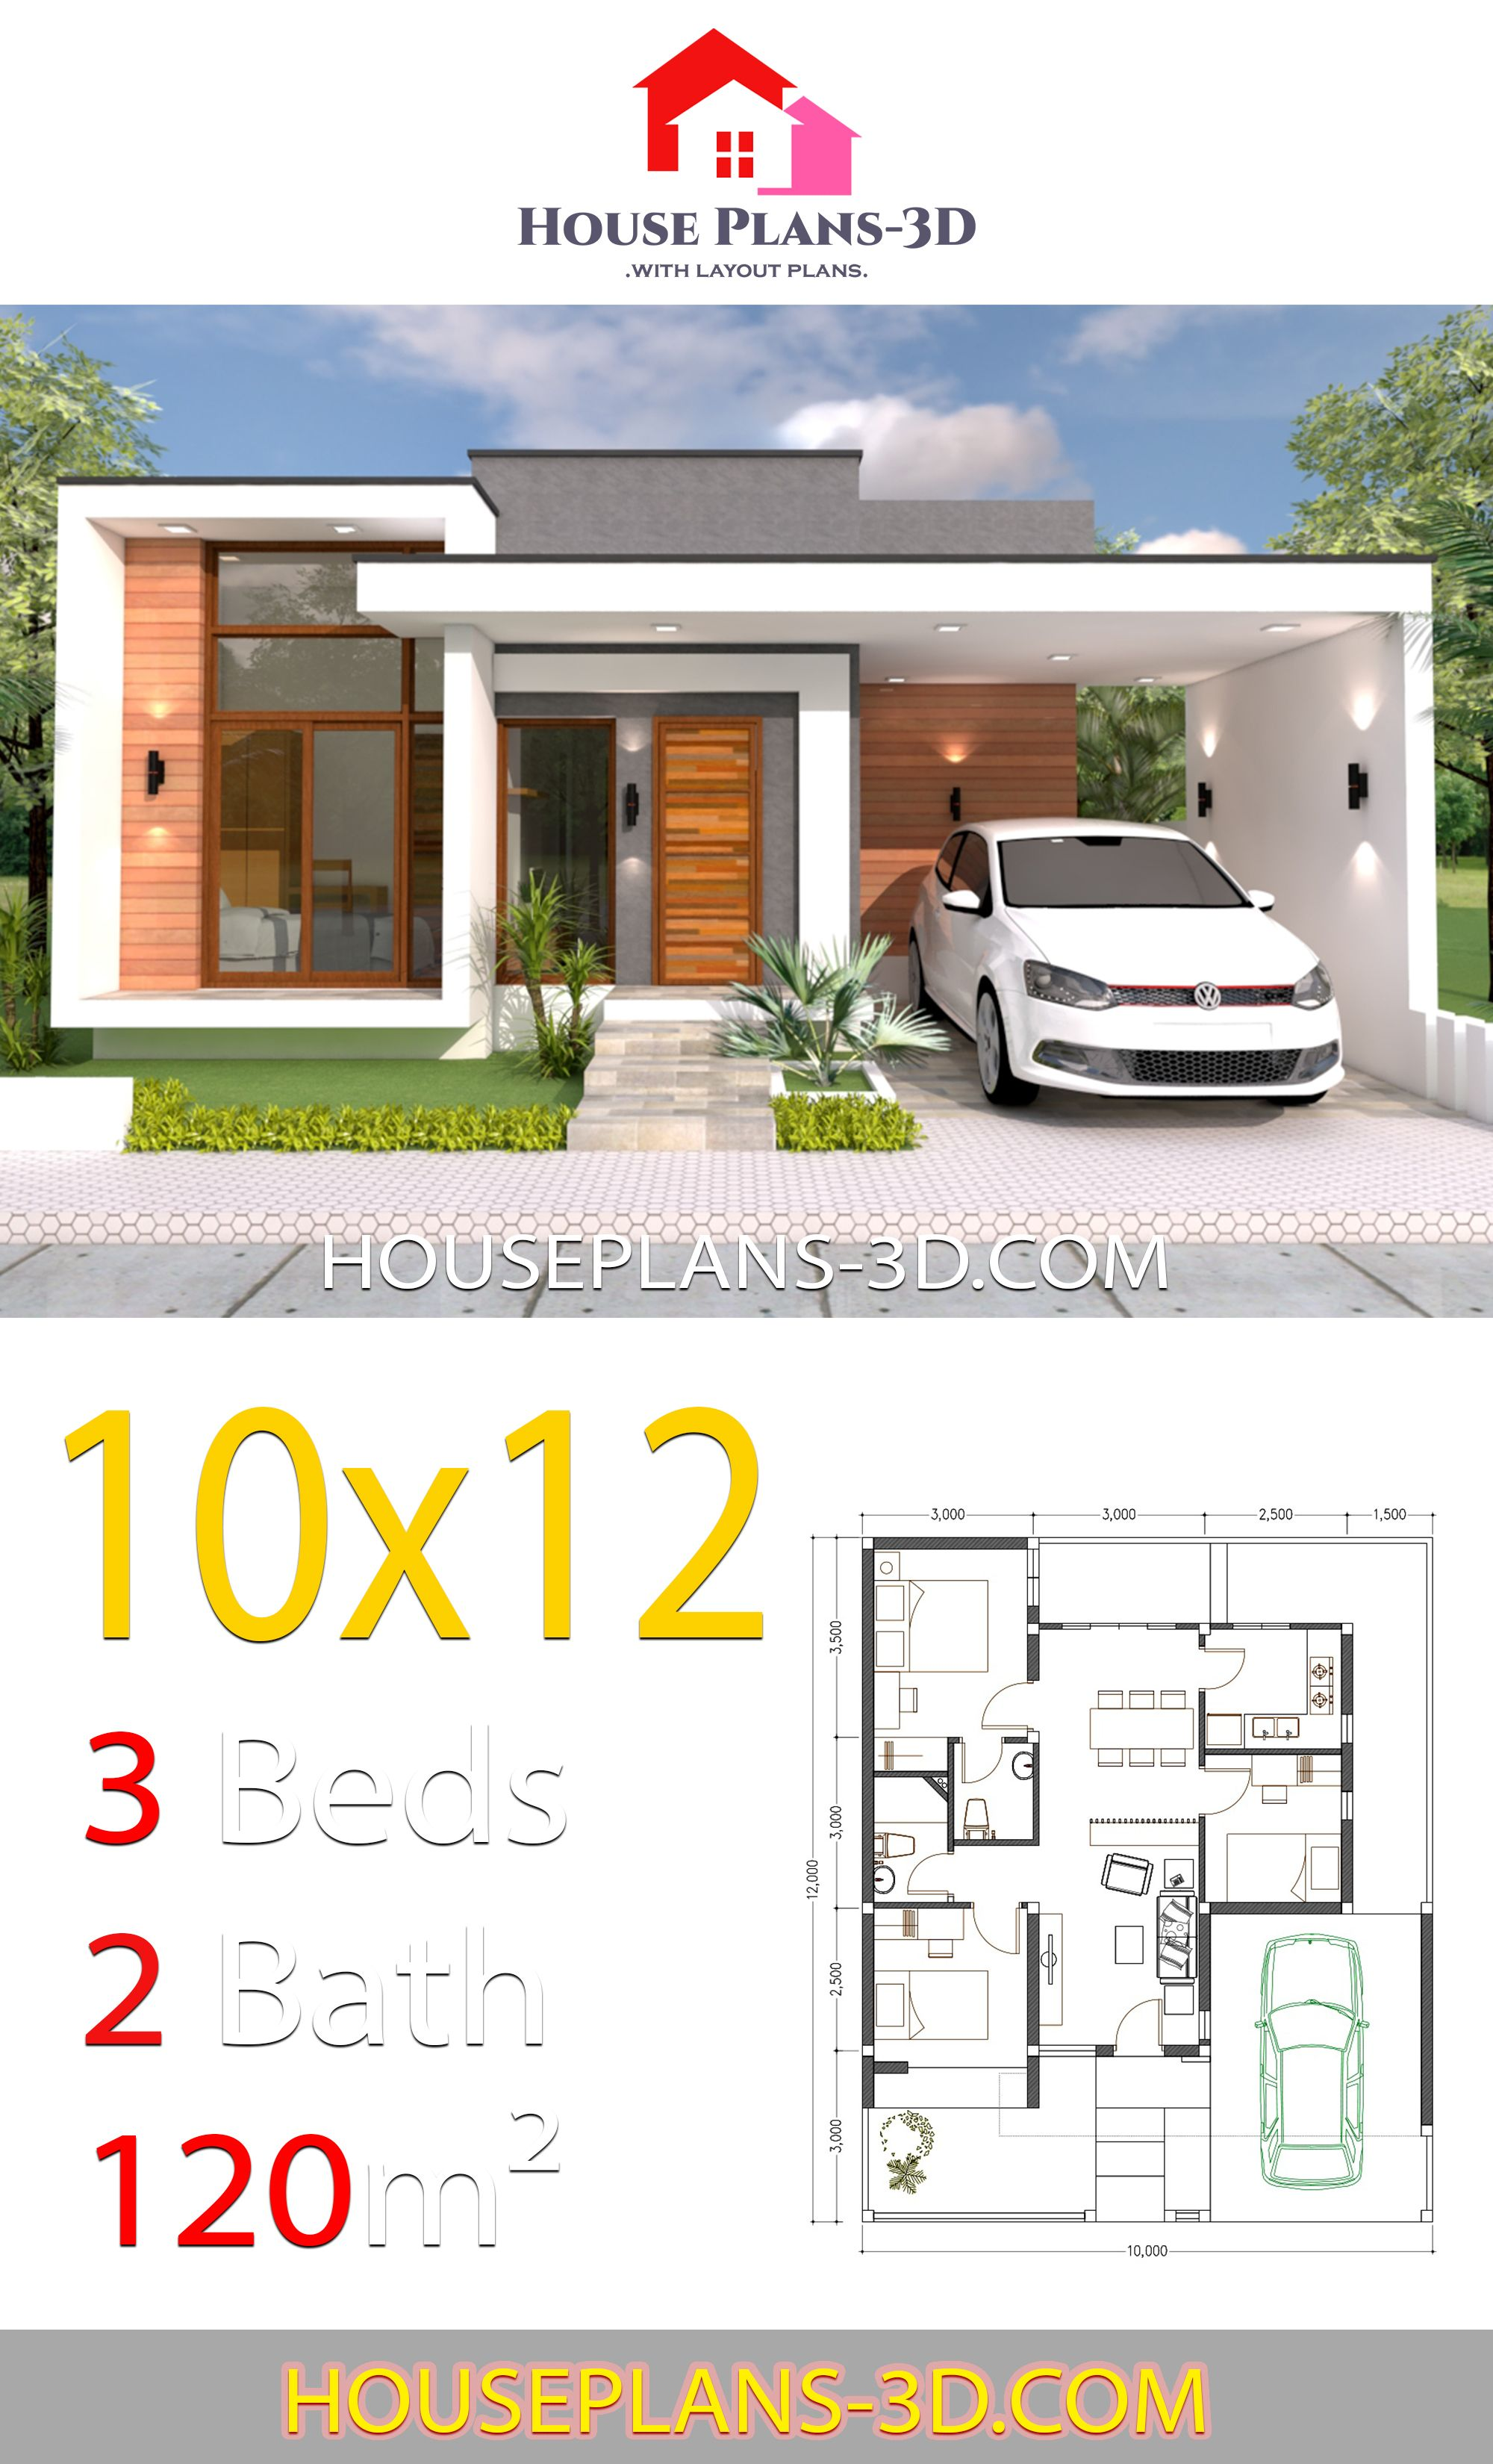 House Design 10x12 With 3 Bedrooms Terrace Roof House Plans 3d In 2020 Small House Design Plans House Construction Plan Model House Plan